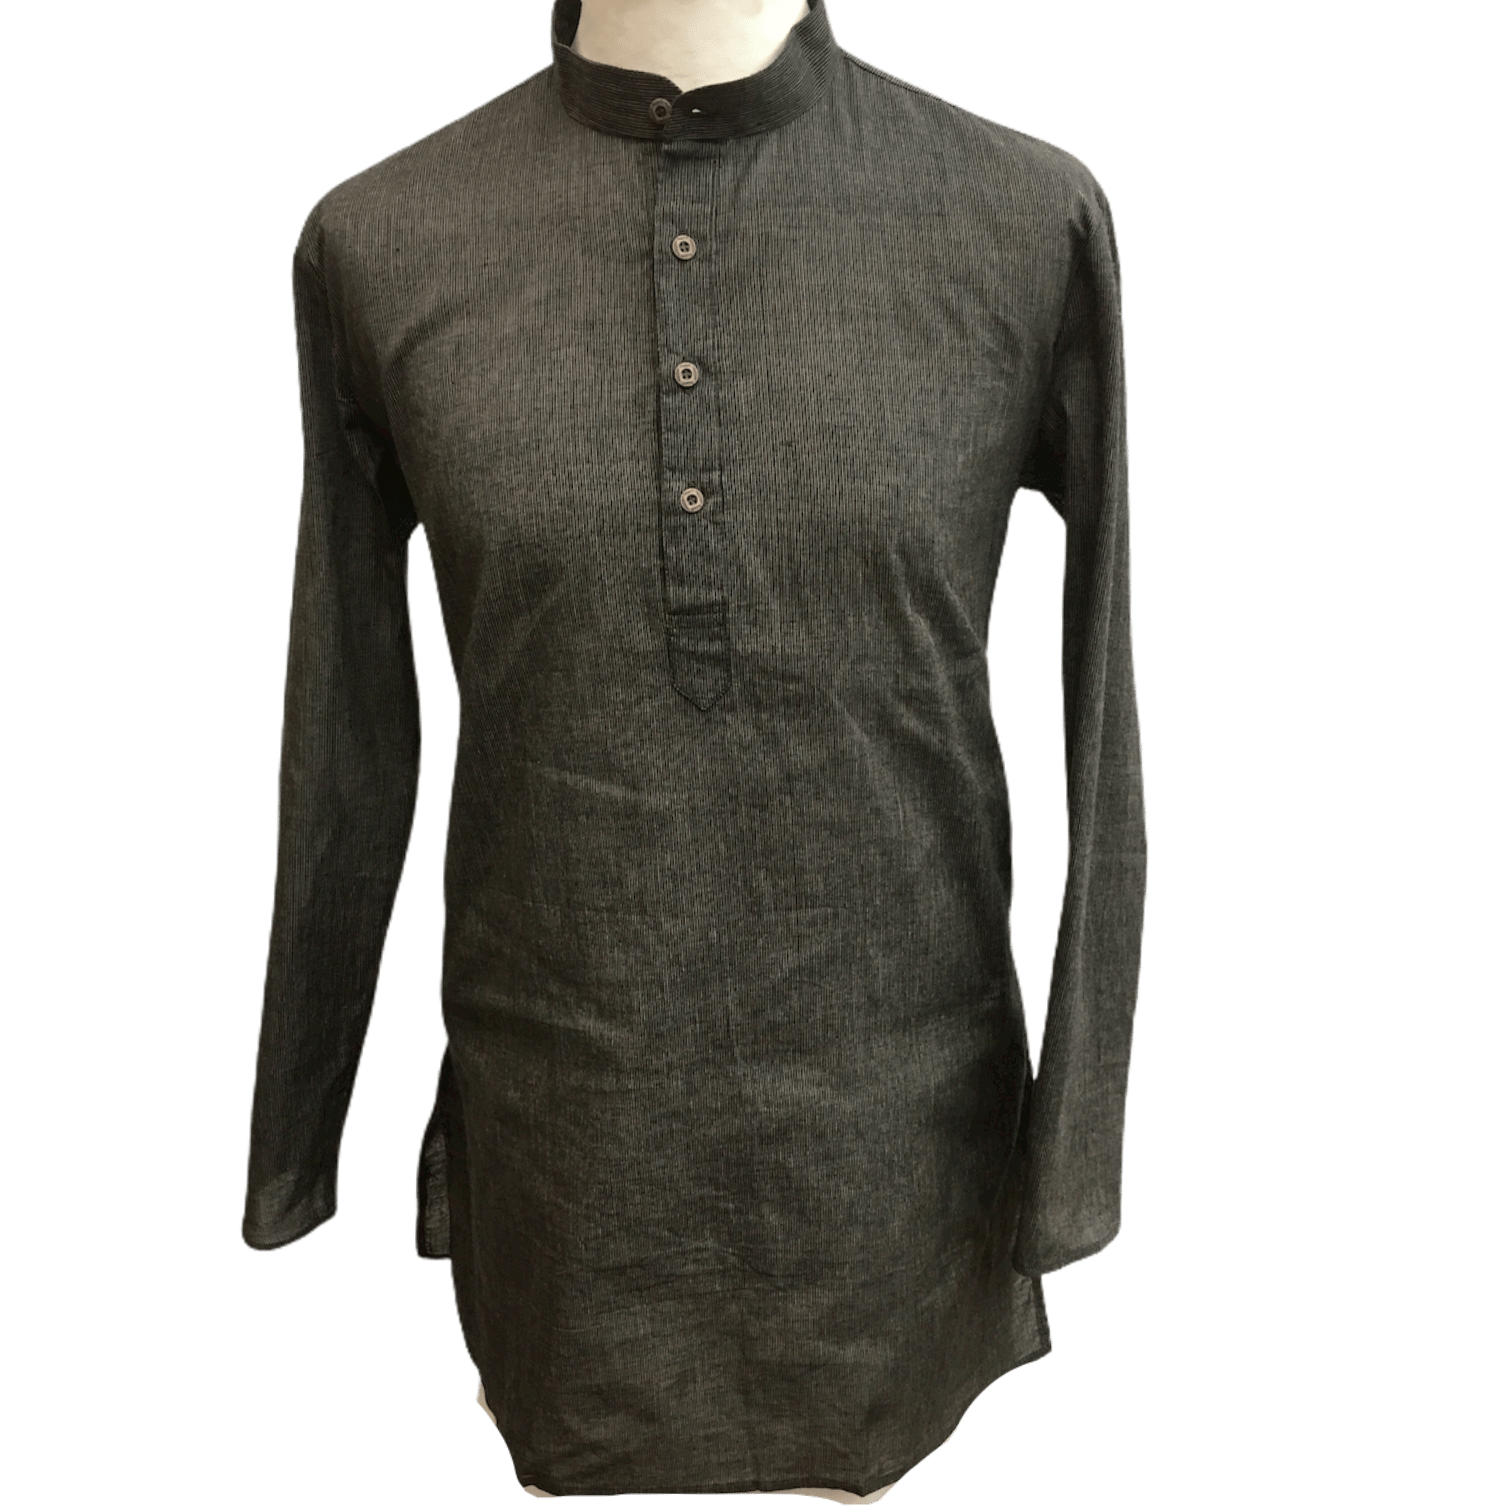 Mens Indian Dhoti Kurta Top in Brown, Thigh Length, for weddings, Bollywood Party  - Alamgir R1219 - Prachy Creations